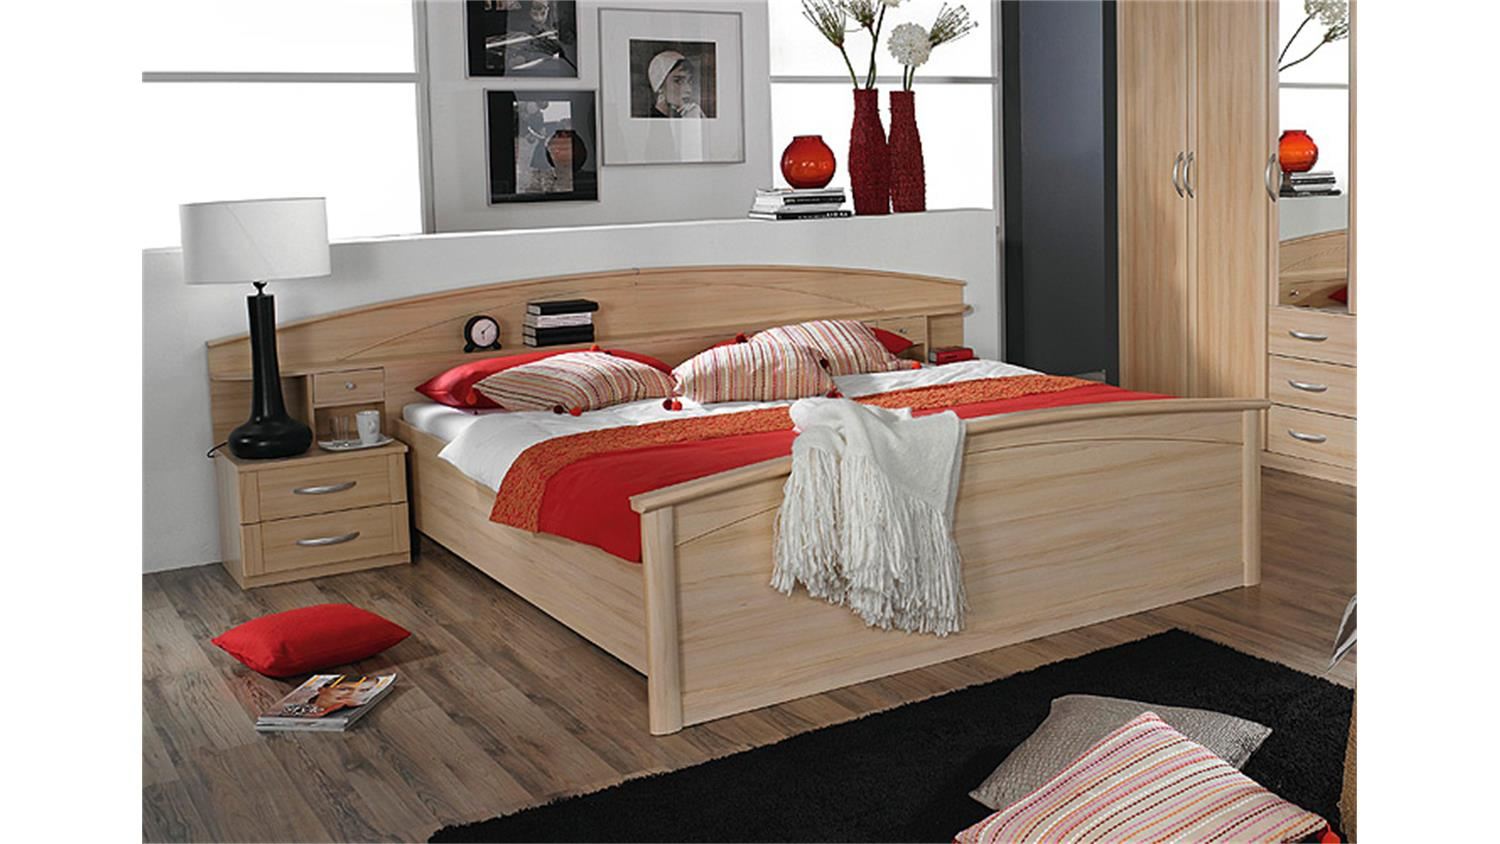 bettanlage ii catania bett doppelbett kommode buche natur. Black Bedroom Furniture Sets. Home Design Ideas